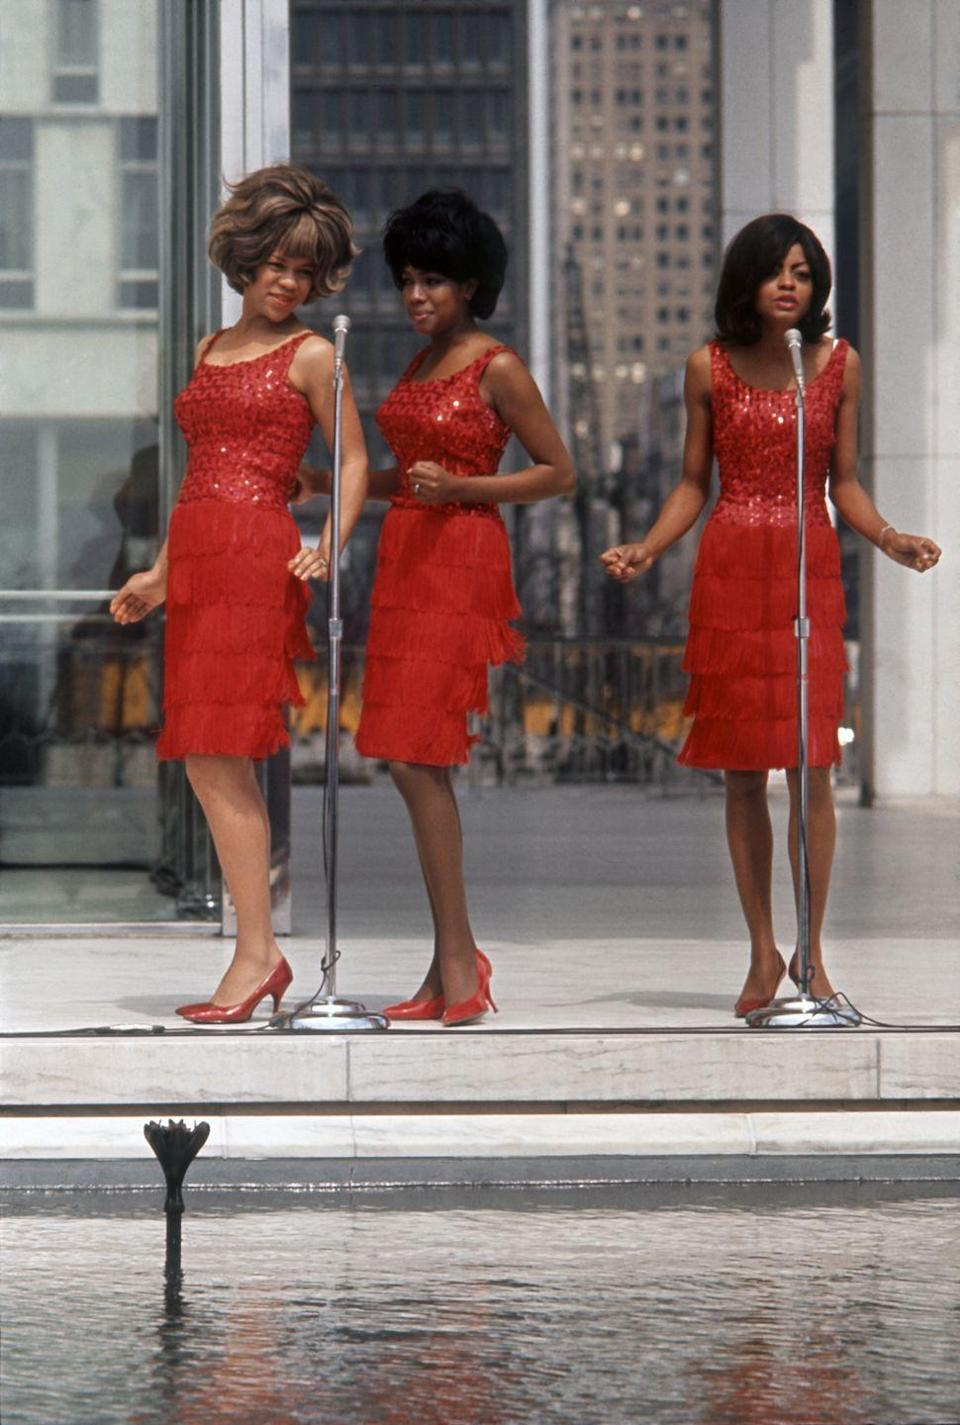 <p>Throughout the '60s, the group became one of Motown's biggest and most successful groups. Here, Mary Wilson, Florence Ballard, and Diana Ross perform in their classic matching outfits in their hometown of Detroit. </p>